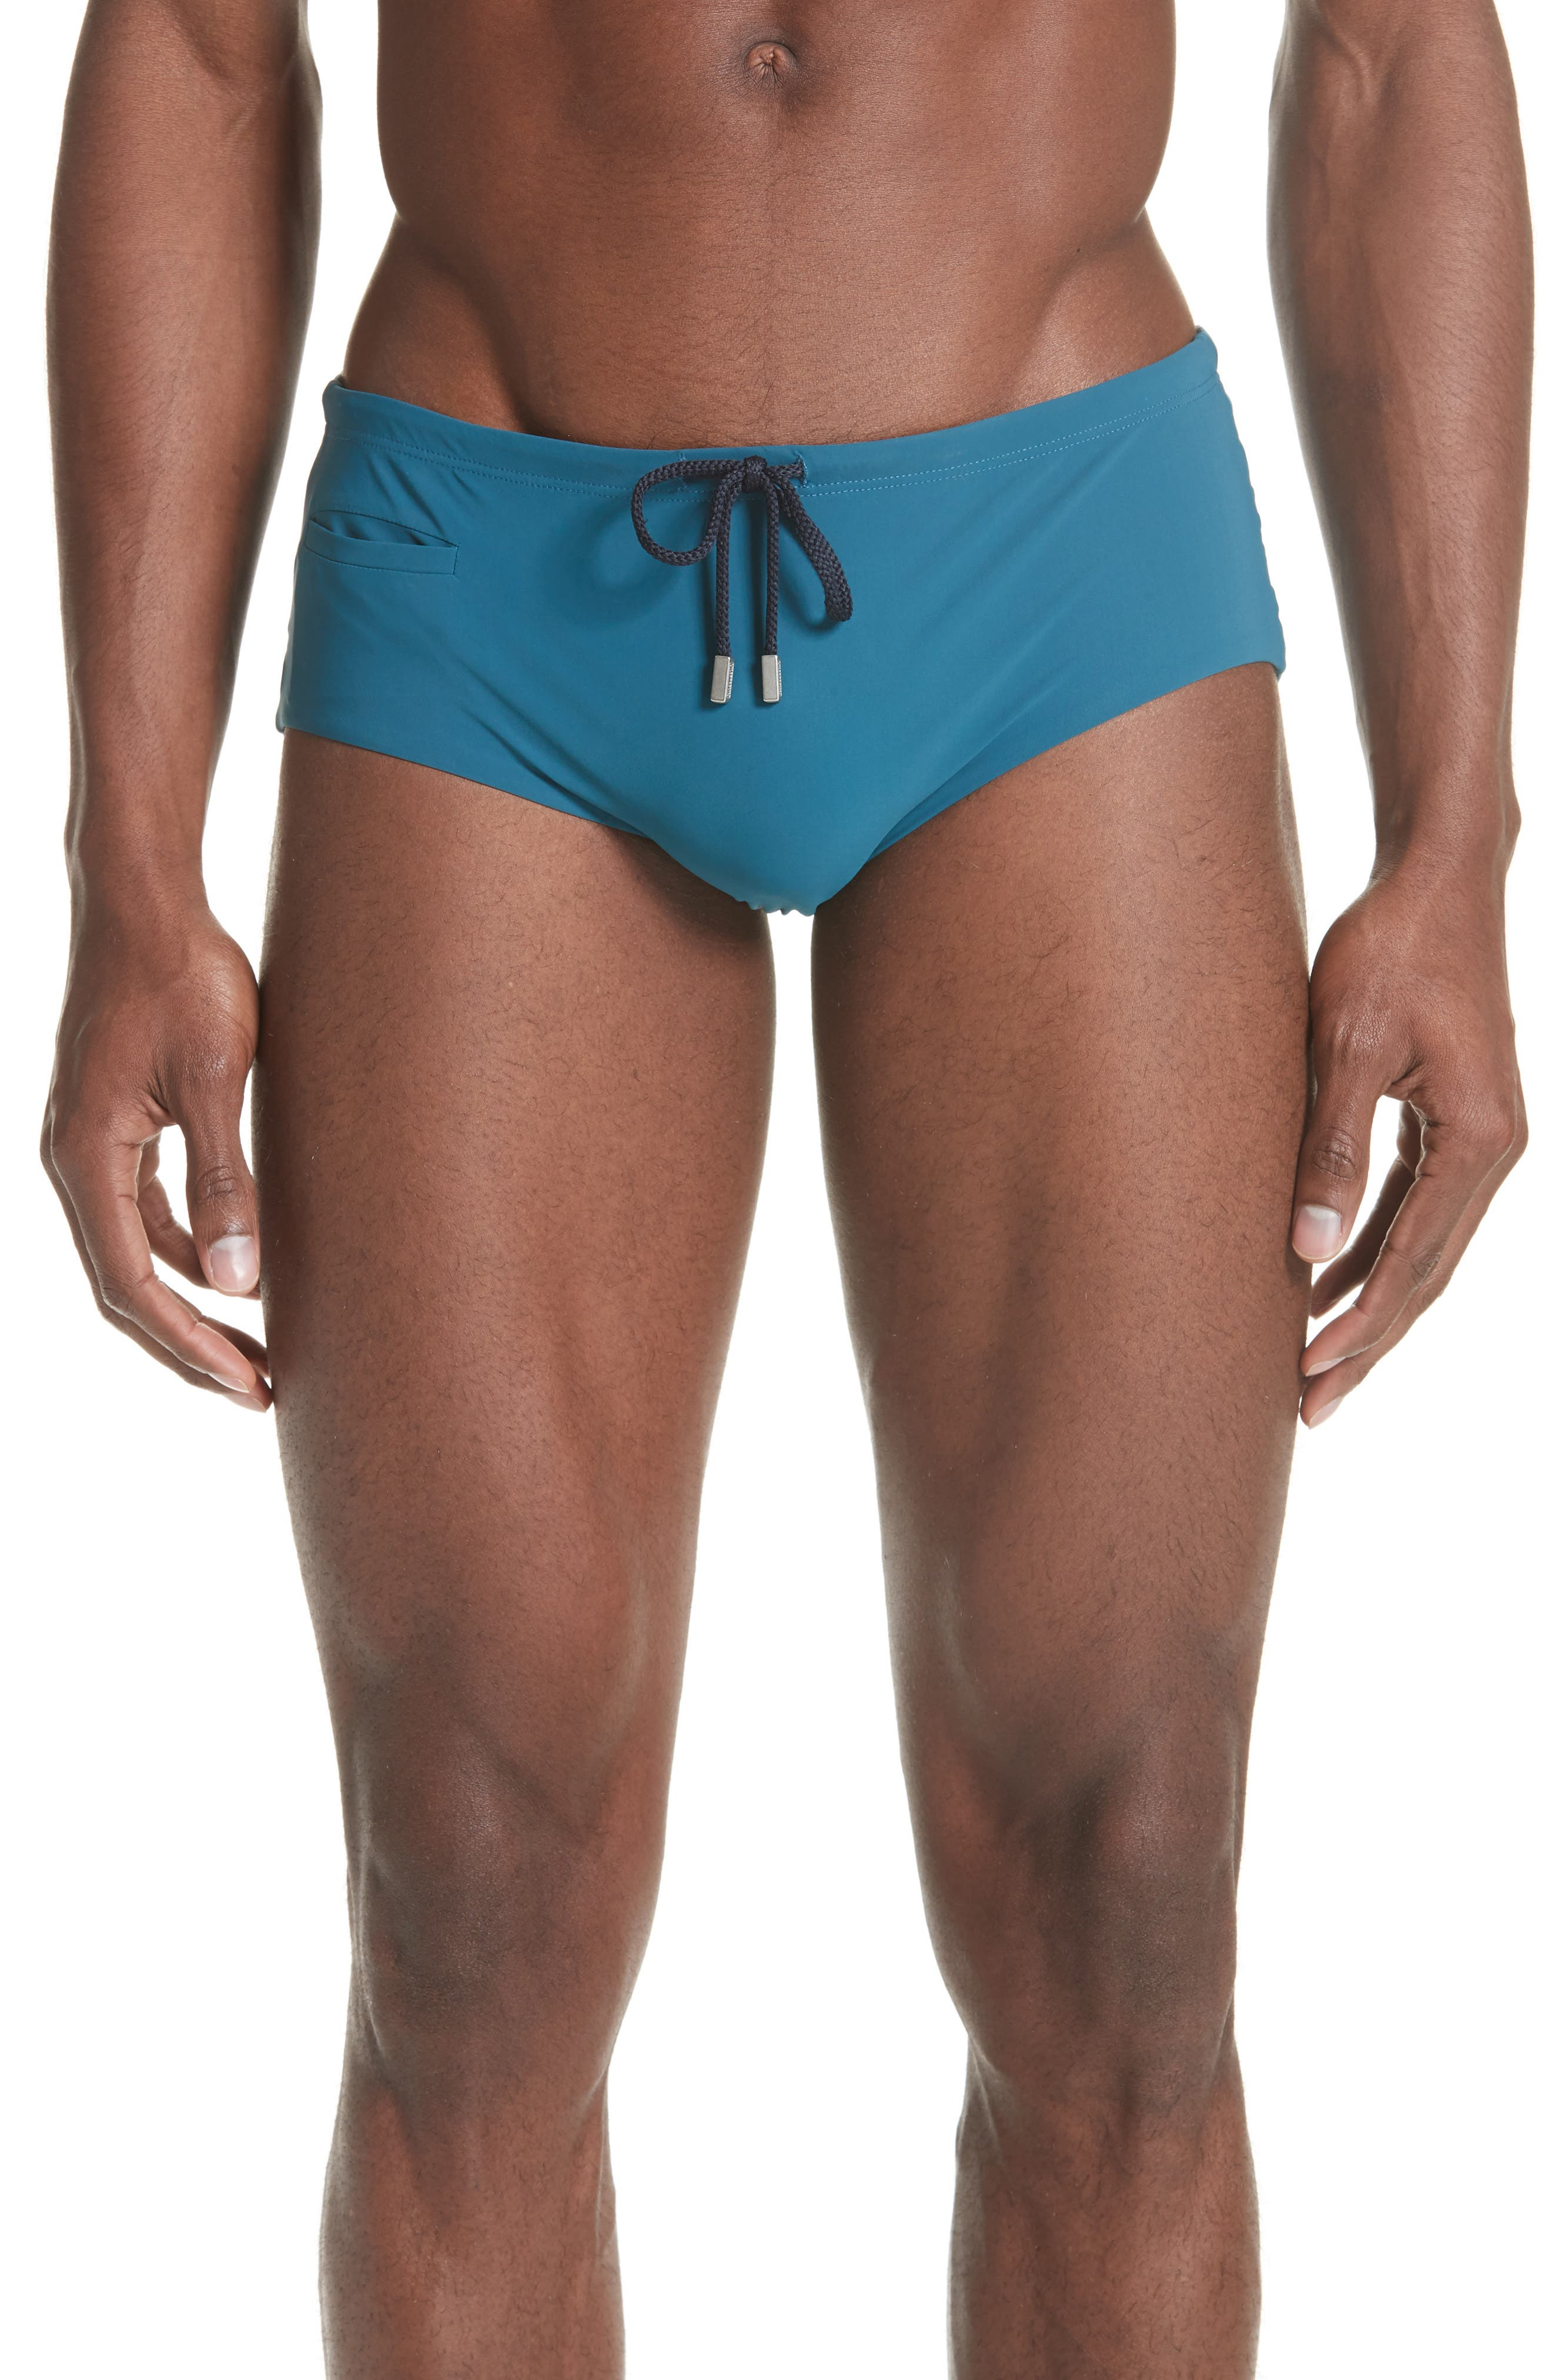 Smoking Jersey Swim Briefs,                         Main,                         color, EMBRUNS